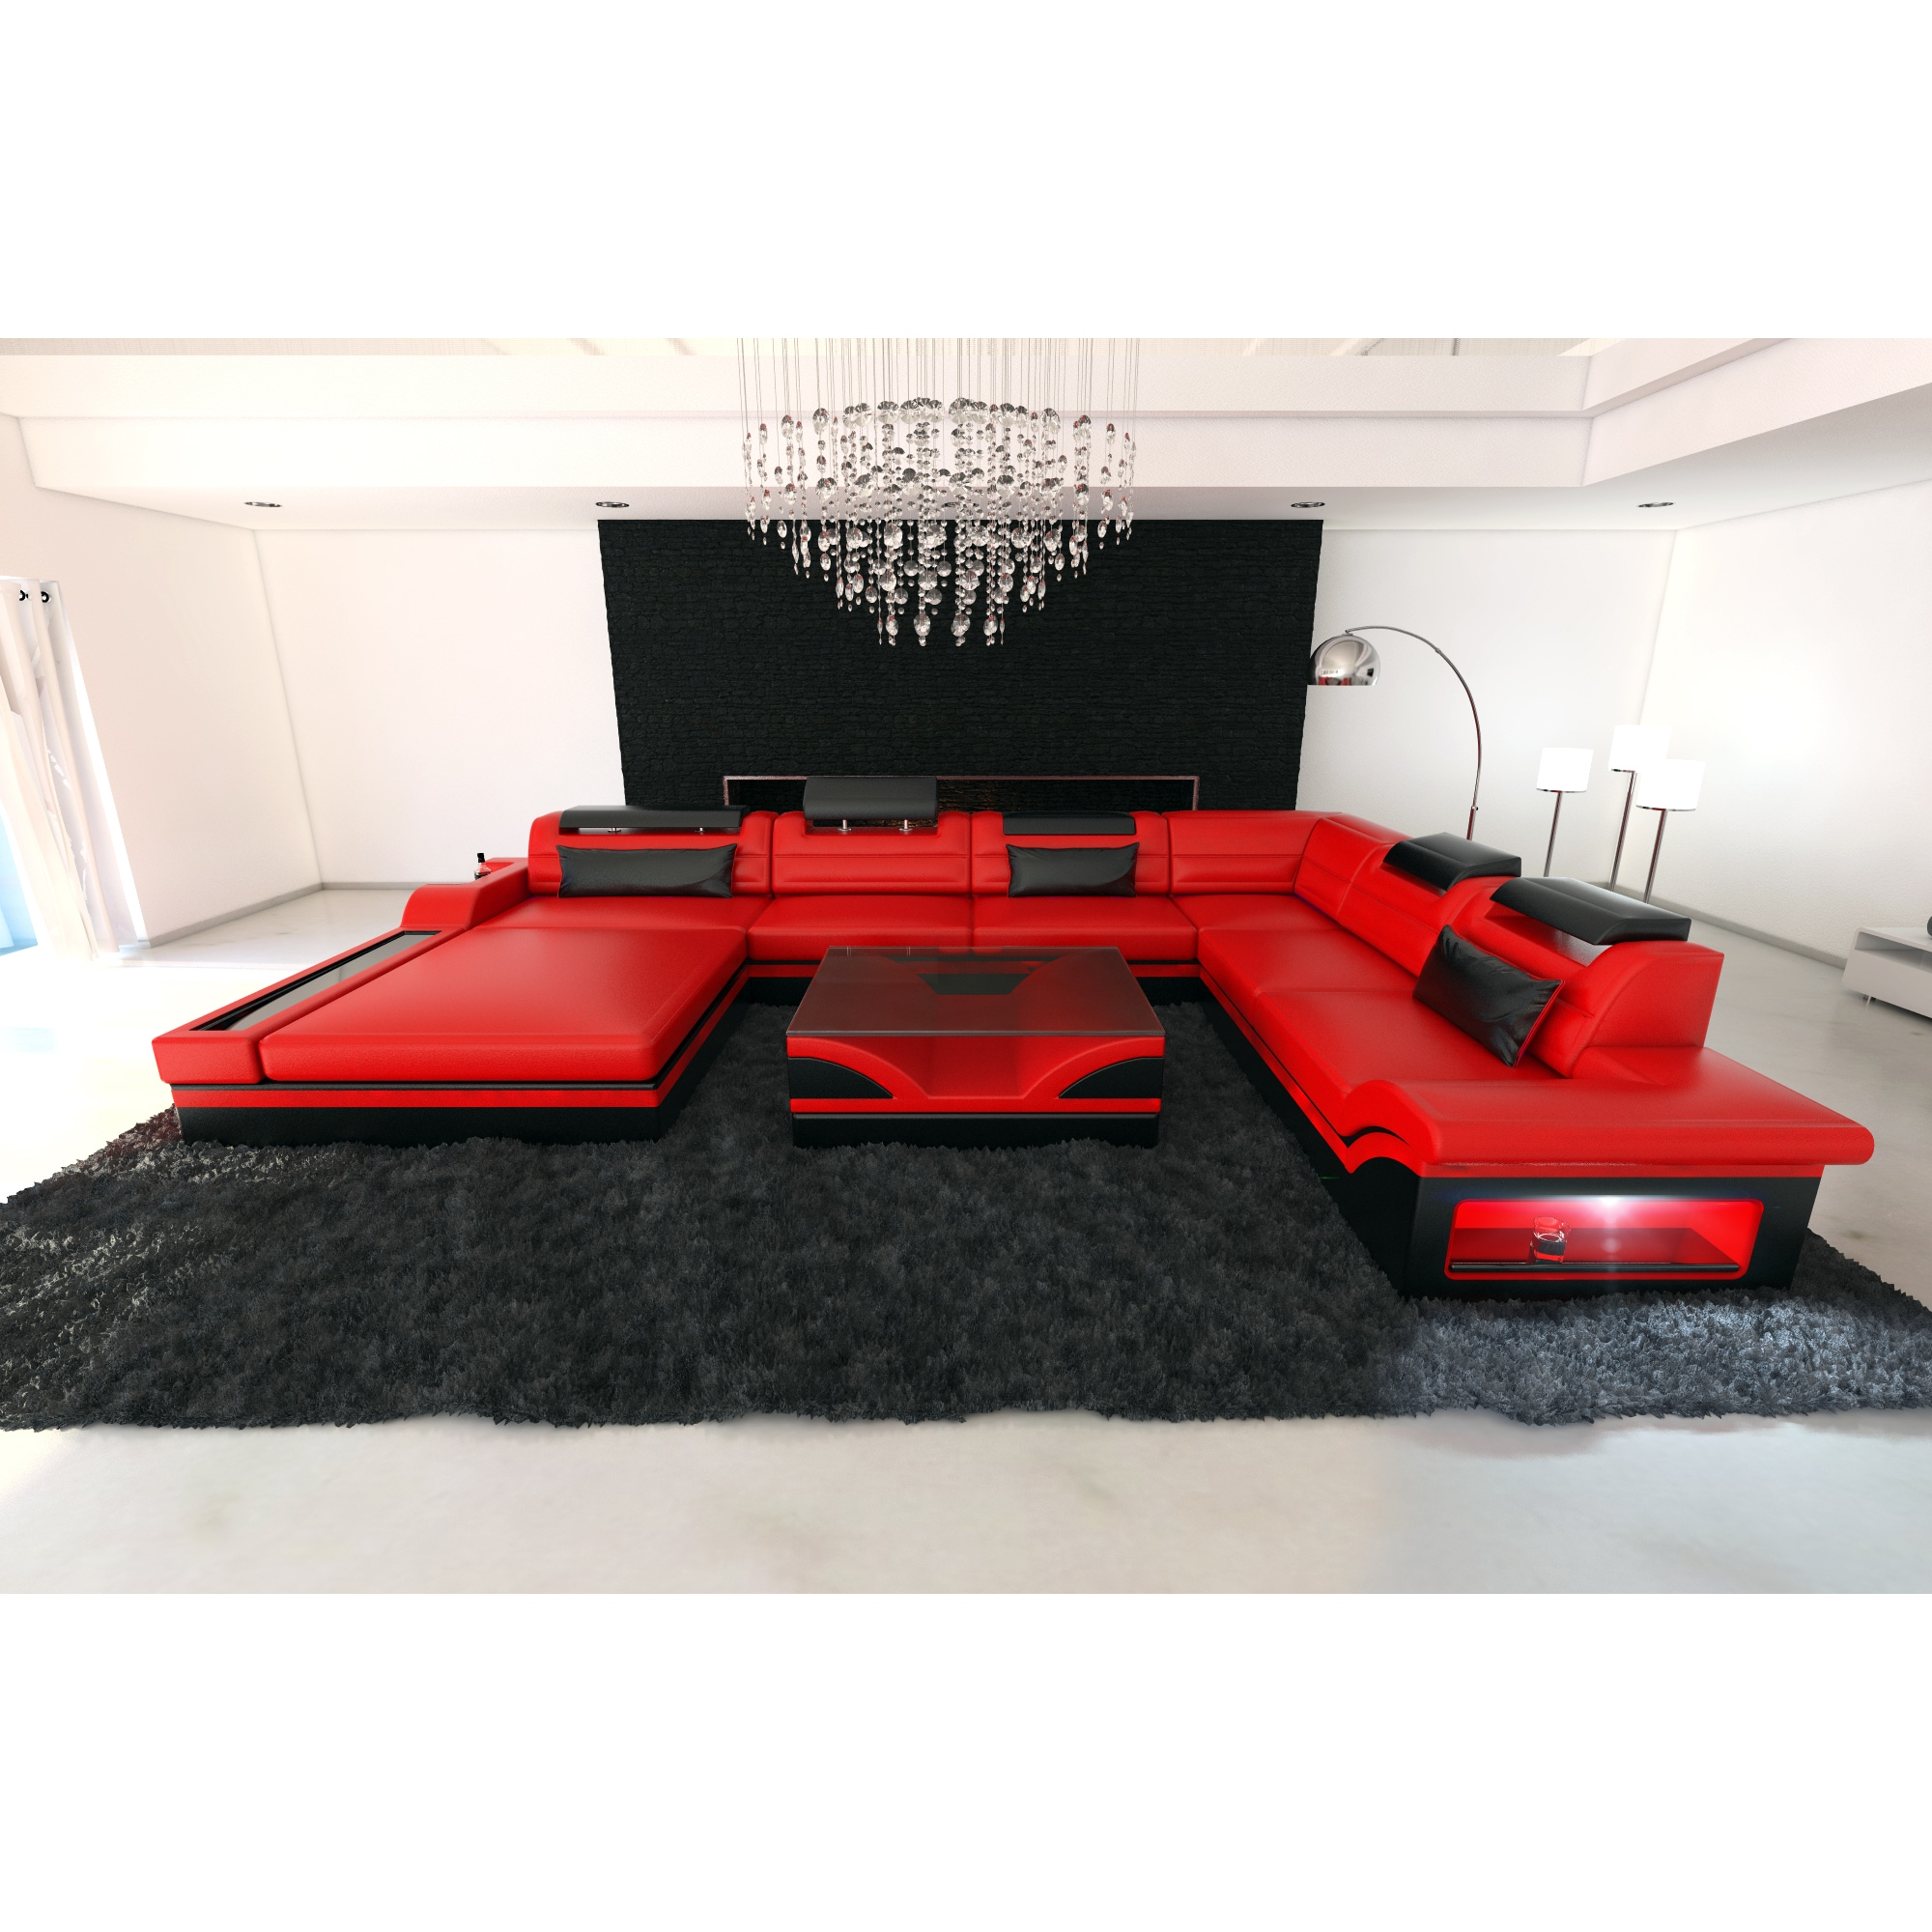 Xxl Sofa Design Design Red Leather Sectional Sofa Orlando Xxl With Led Lights